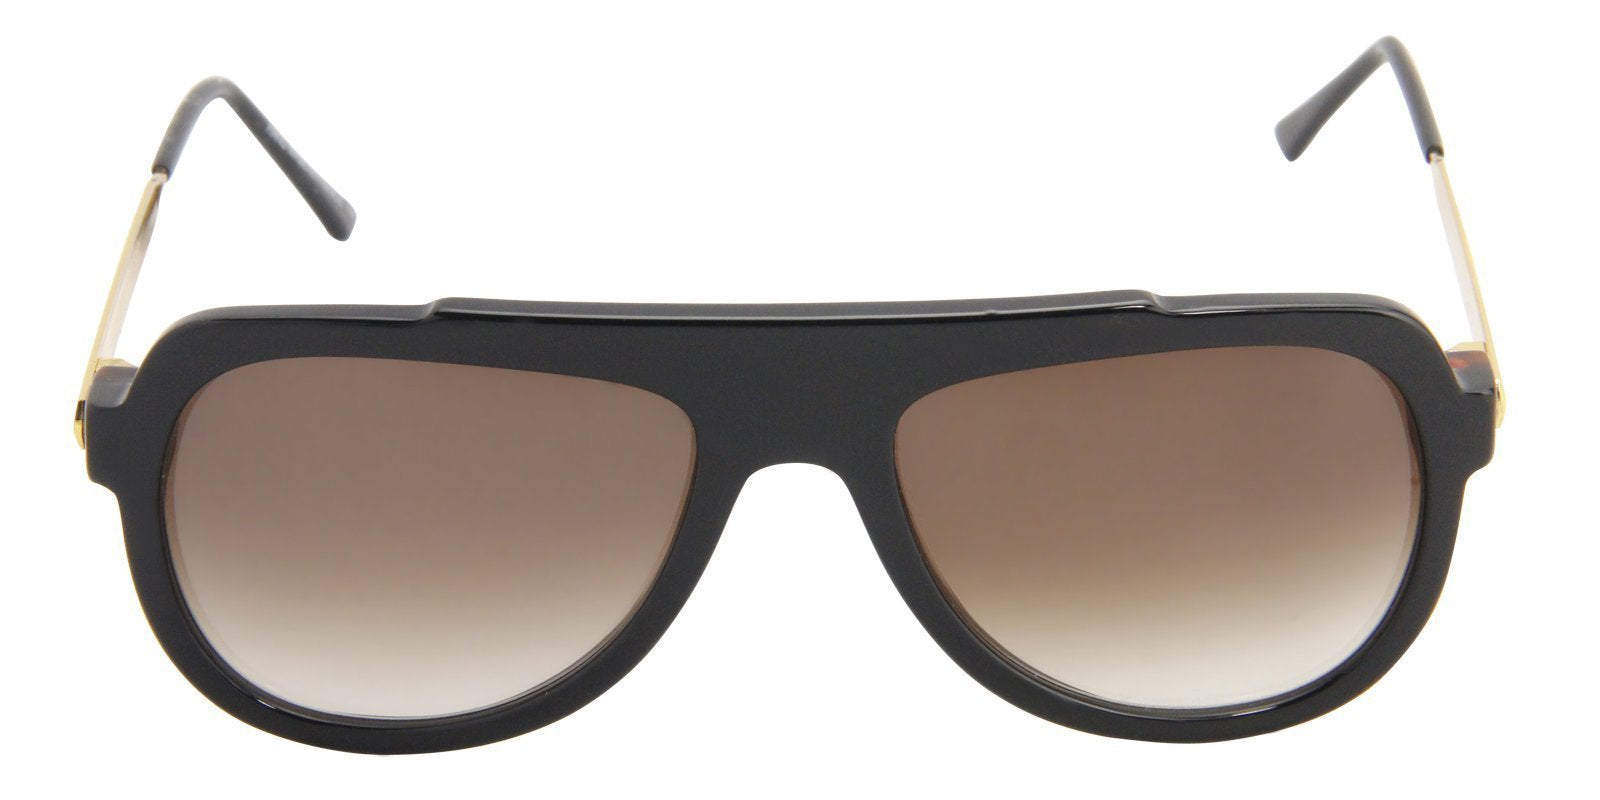 Thierry Lasry - Staminy Black Aviator Men, Women Sunglasses - 58mm-Sunglasses-Designer Eyes